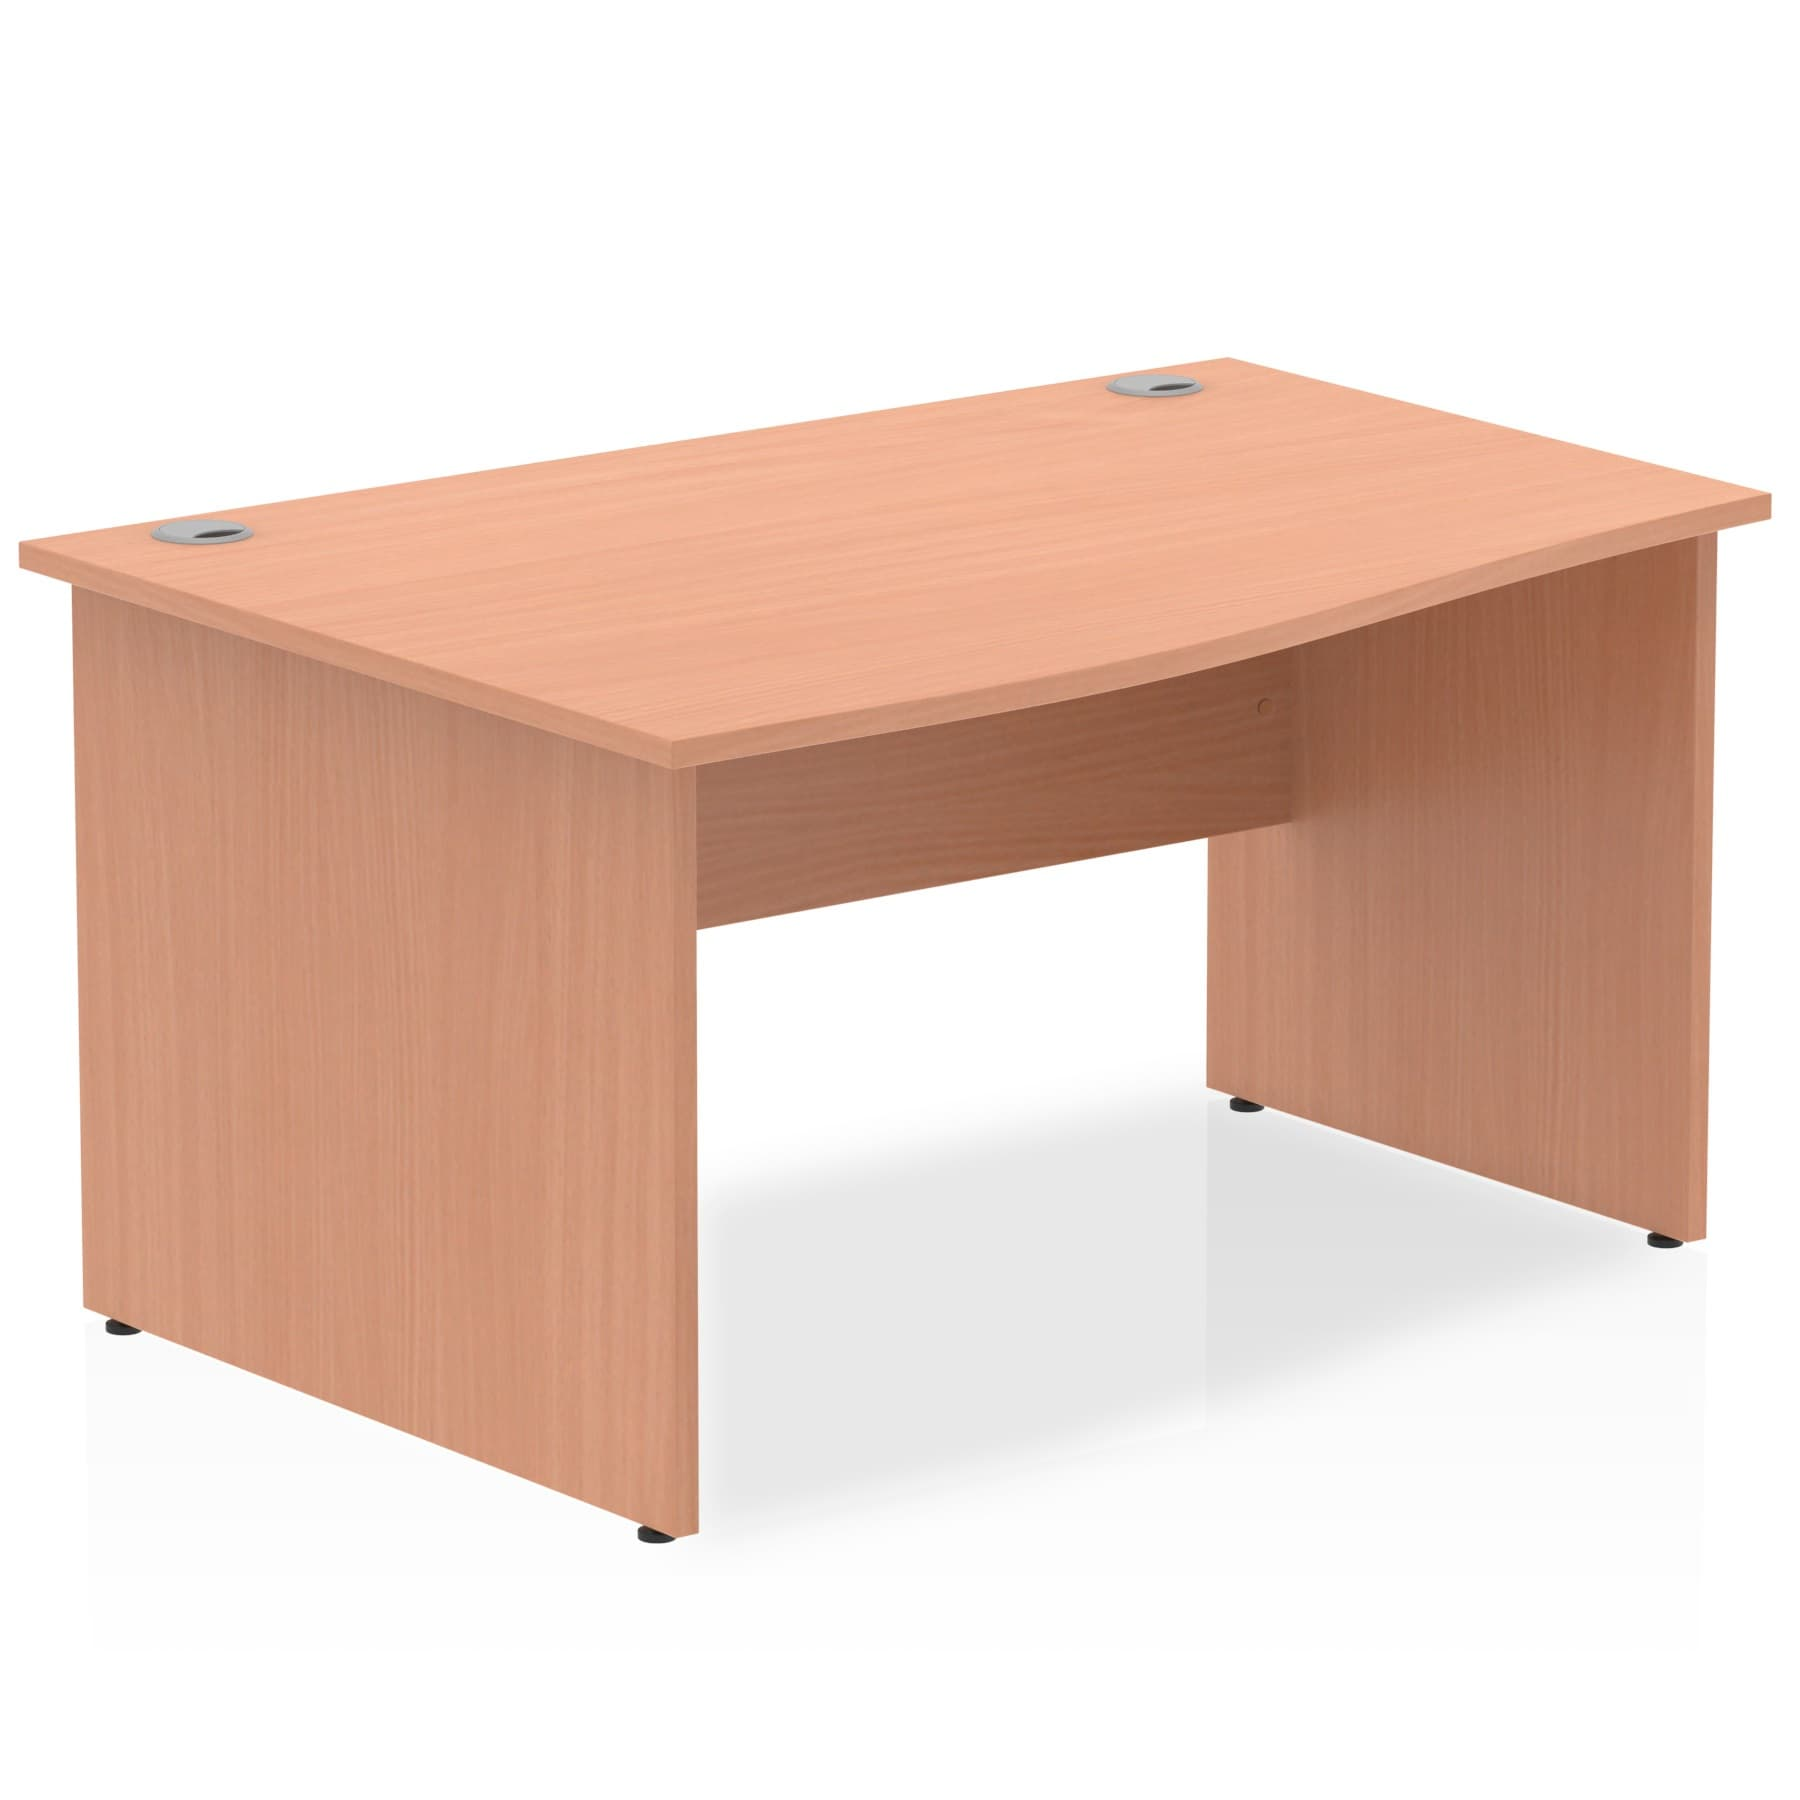 Impulse 1400 Left Hand Wave Desk